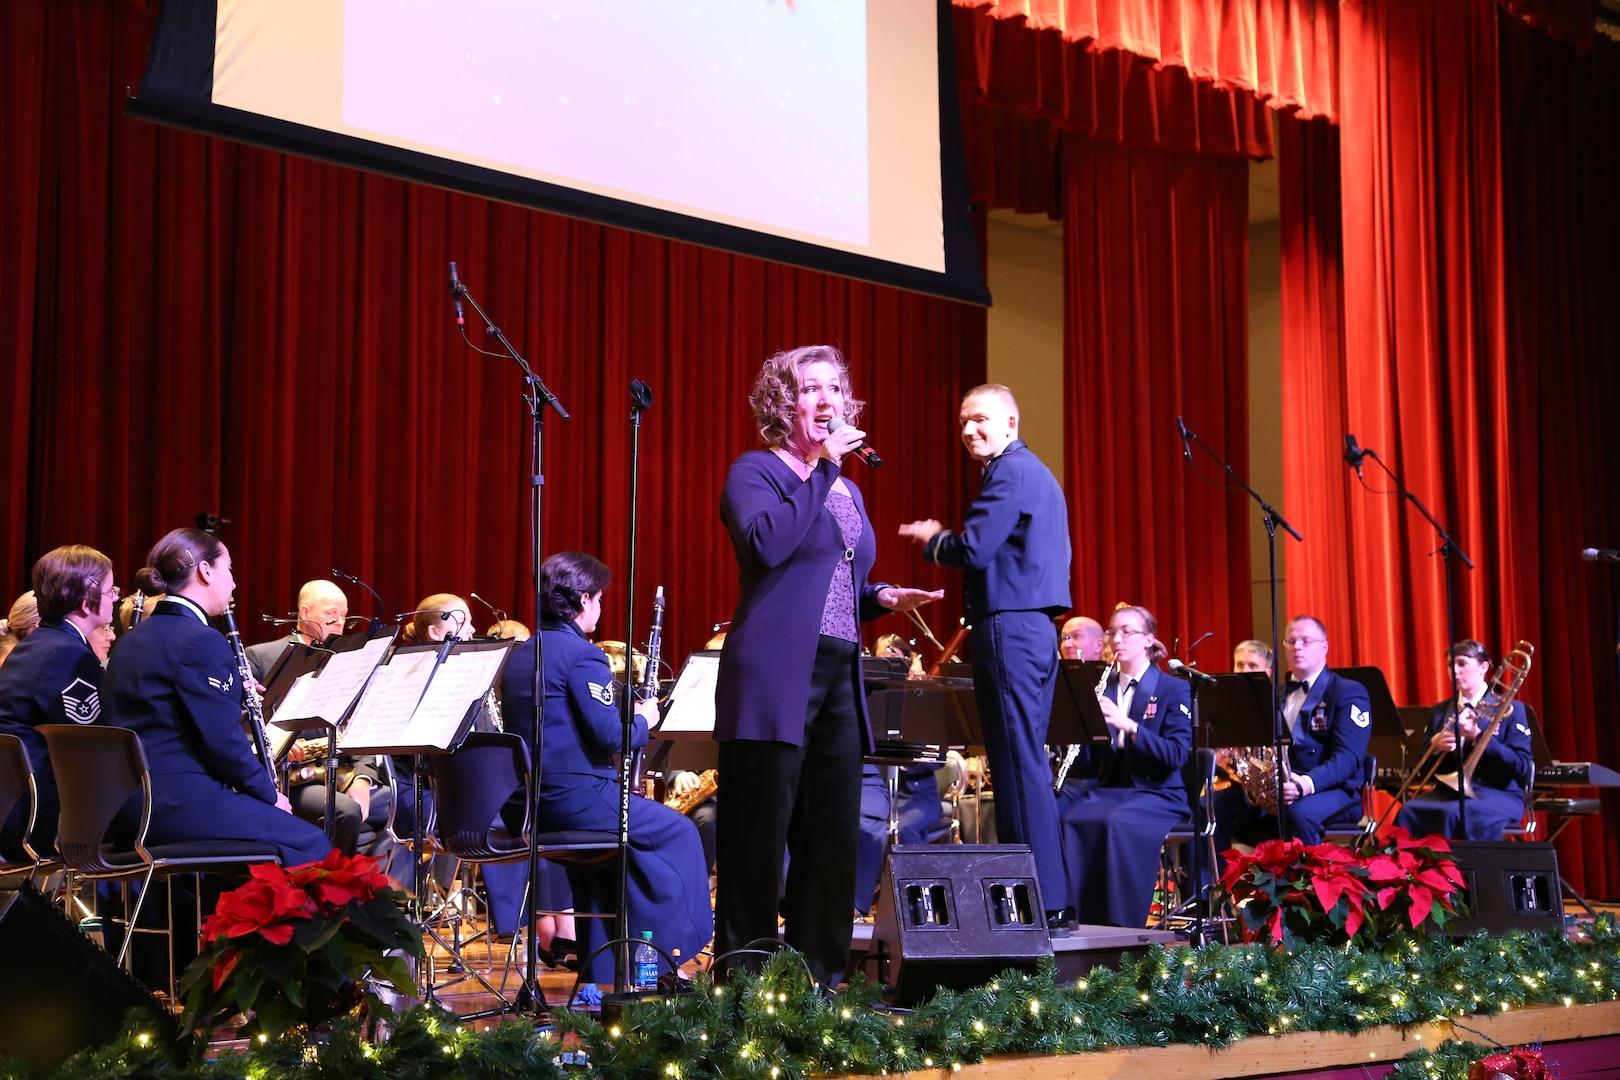 Air Force Master Sgt. Nancy Poffenbarger, Air Force Band of the West vocalist, sings a variety of holiday songs with members of the Air Force Band of the West Dec. 17 at the Joint Base San Antonio-Lackland Bob Hope Theater. (U.S. Air Force photo by Airman 1st Class Lincoln Korver)